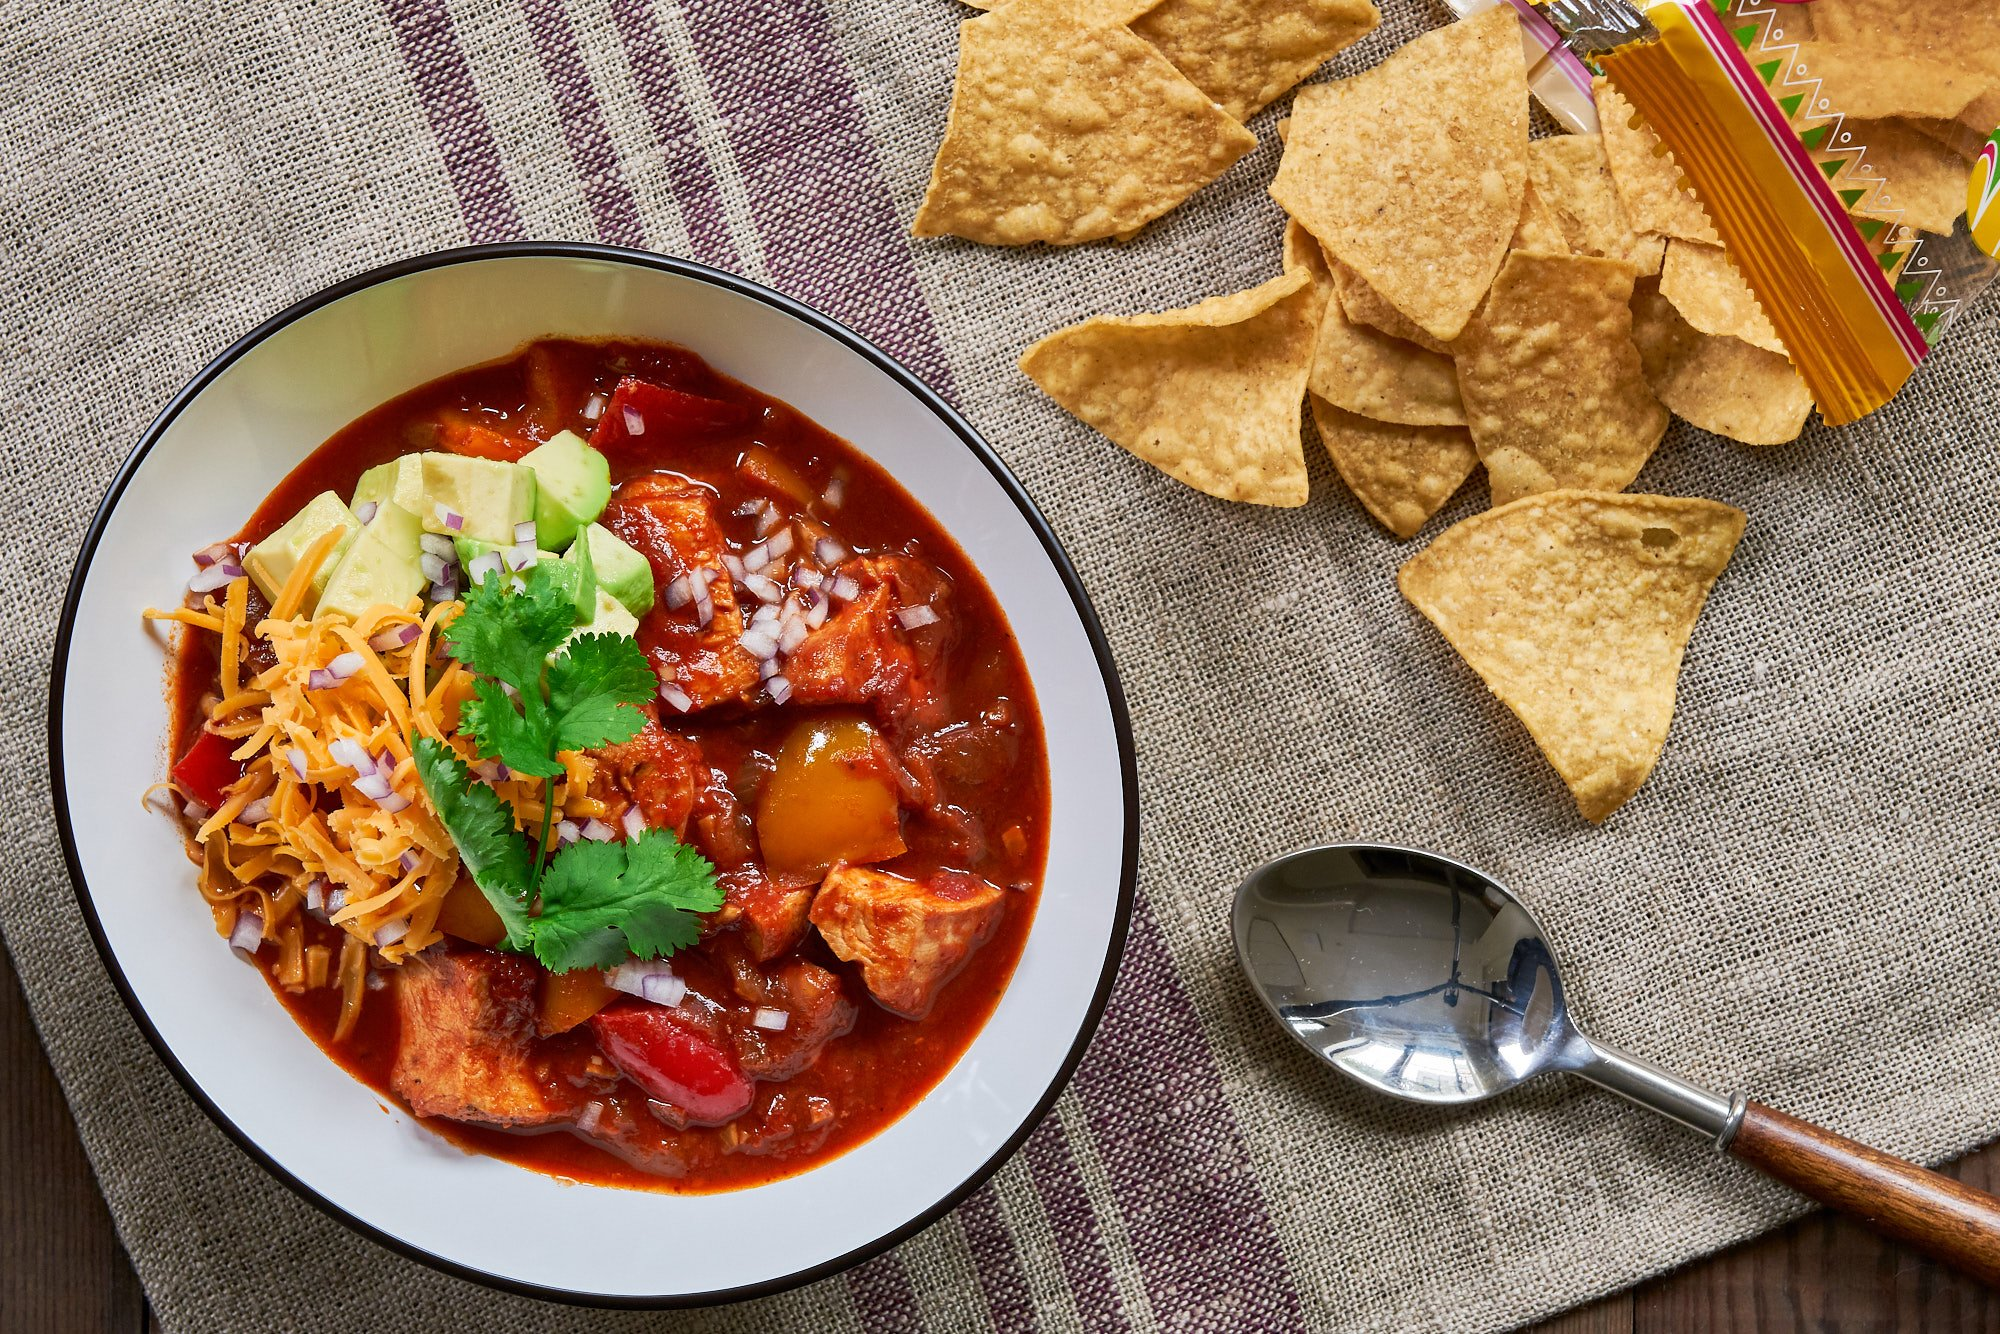 This easy chicken chili has a wonderful balance of textures and taste.